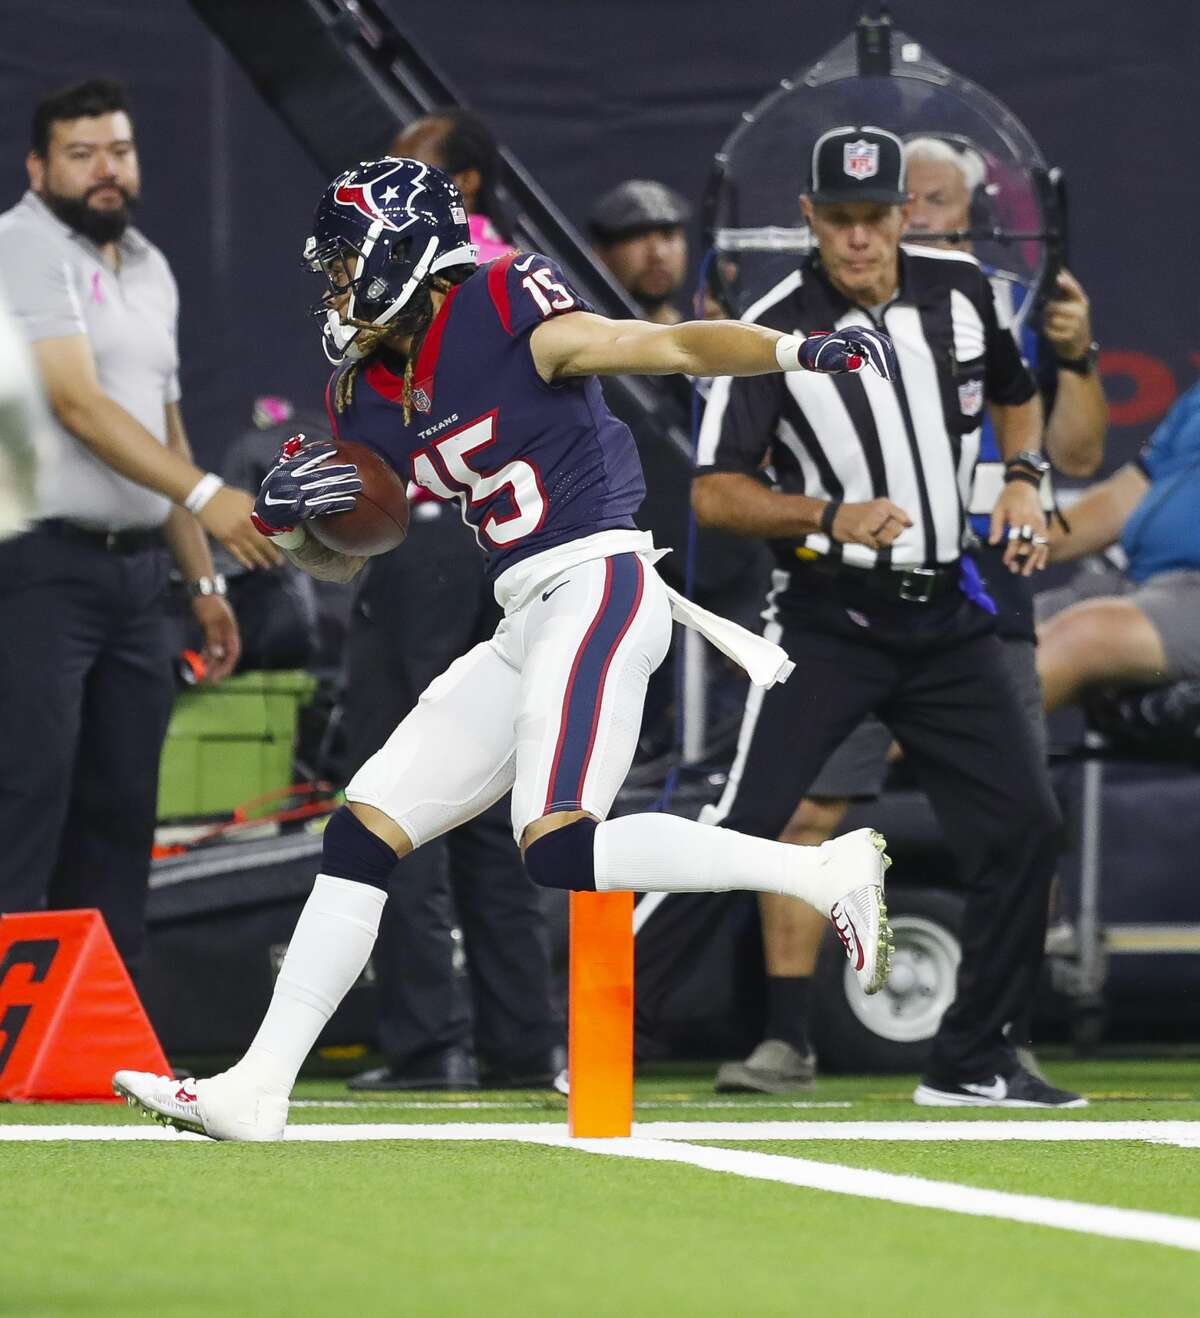 Houston Texans wide receiver Will Fuller (15) steps into the endzone for a touchdown during the third quarter of an NFL football game at NRG Stadium on Sunday, Oct. 8, 2017, in Houston. ( Brett Coomer / Houston Chronicle )